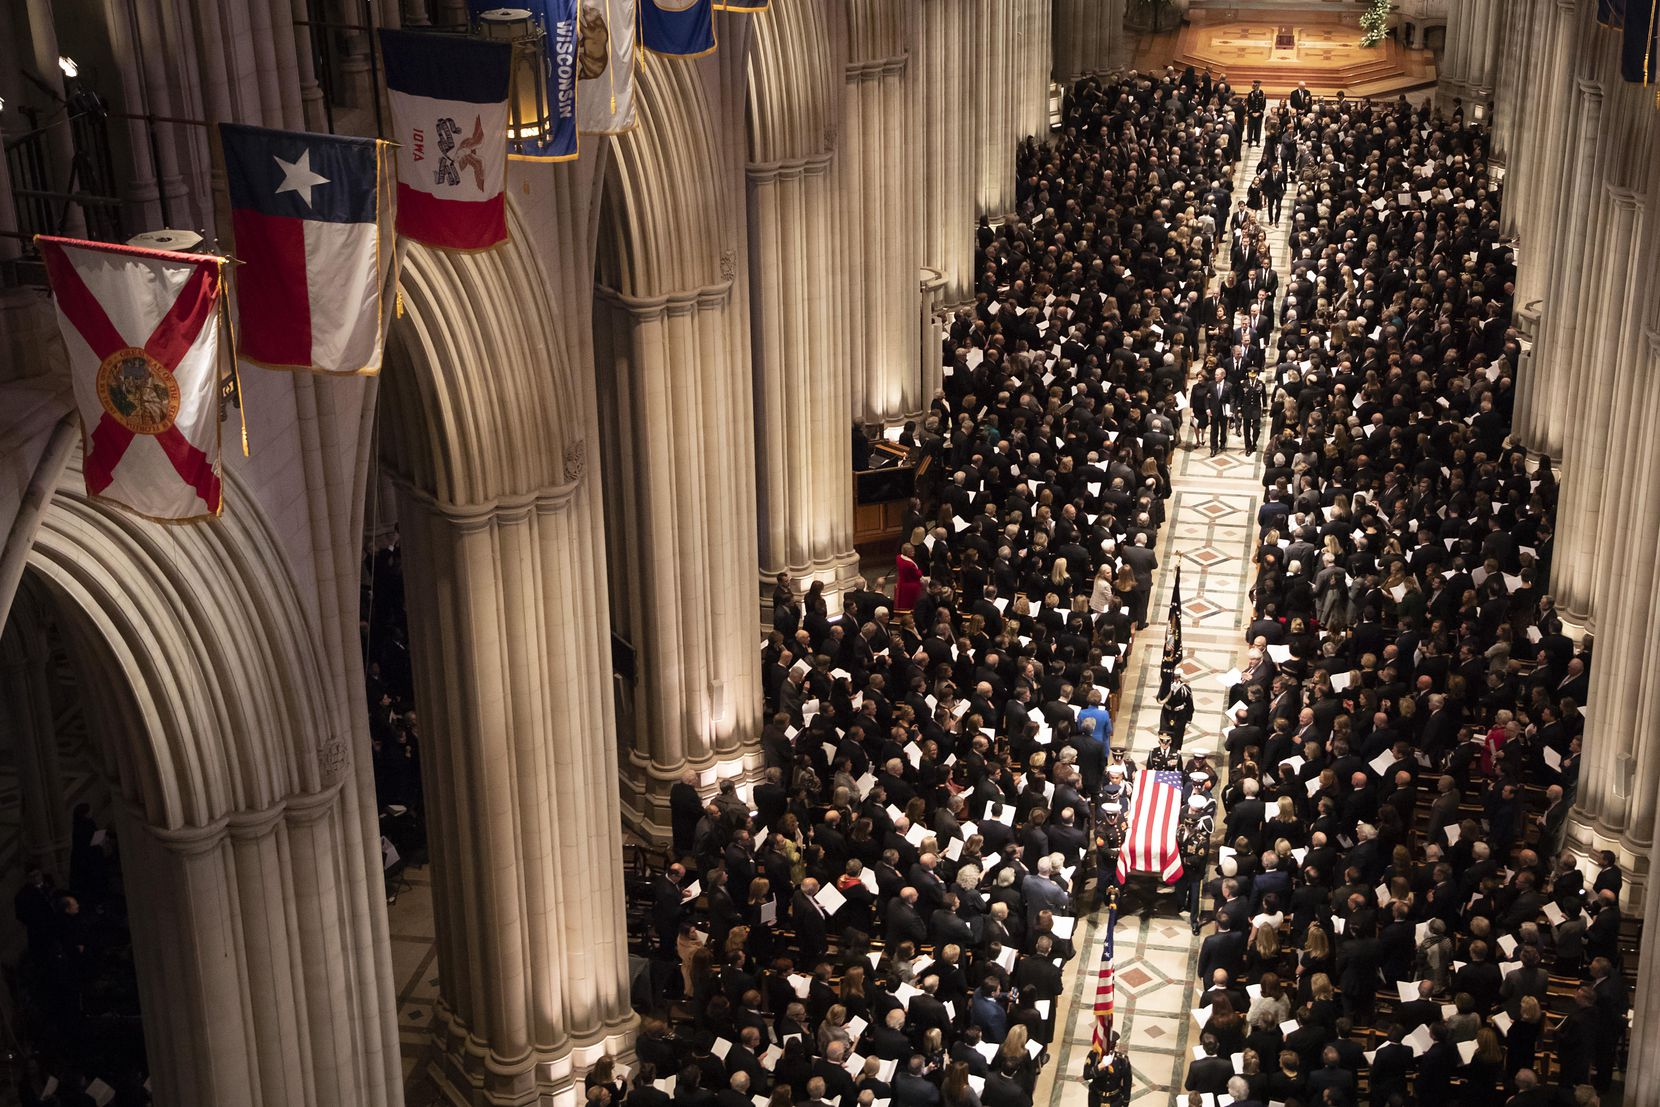 A military honor guard carries the flag-draped casket as it depart the Washington National Cathedral at the conclusion of the State Funeral for George H.W. Bush, the 41st President of the United States, on Wednesday, Dec. 5, 2018, in Washington. (Smiley N. Pool/The Dallas Morning News)